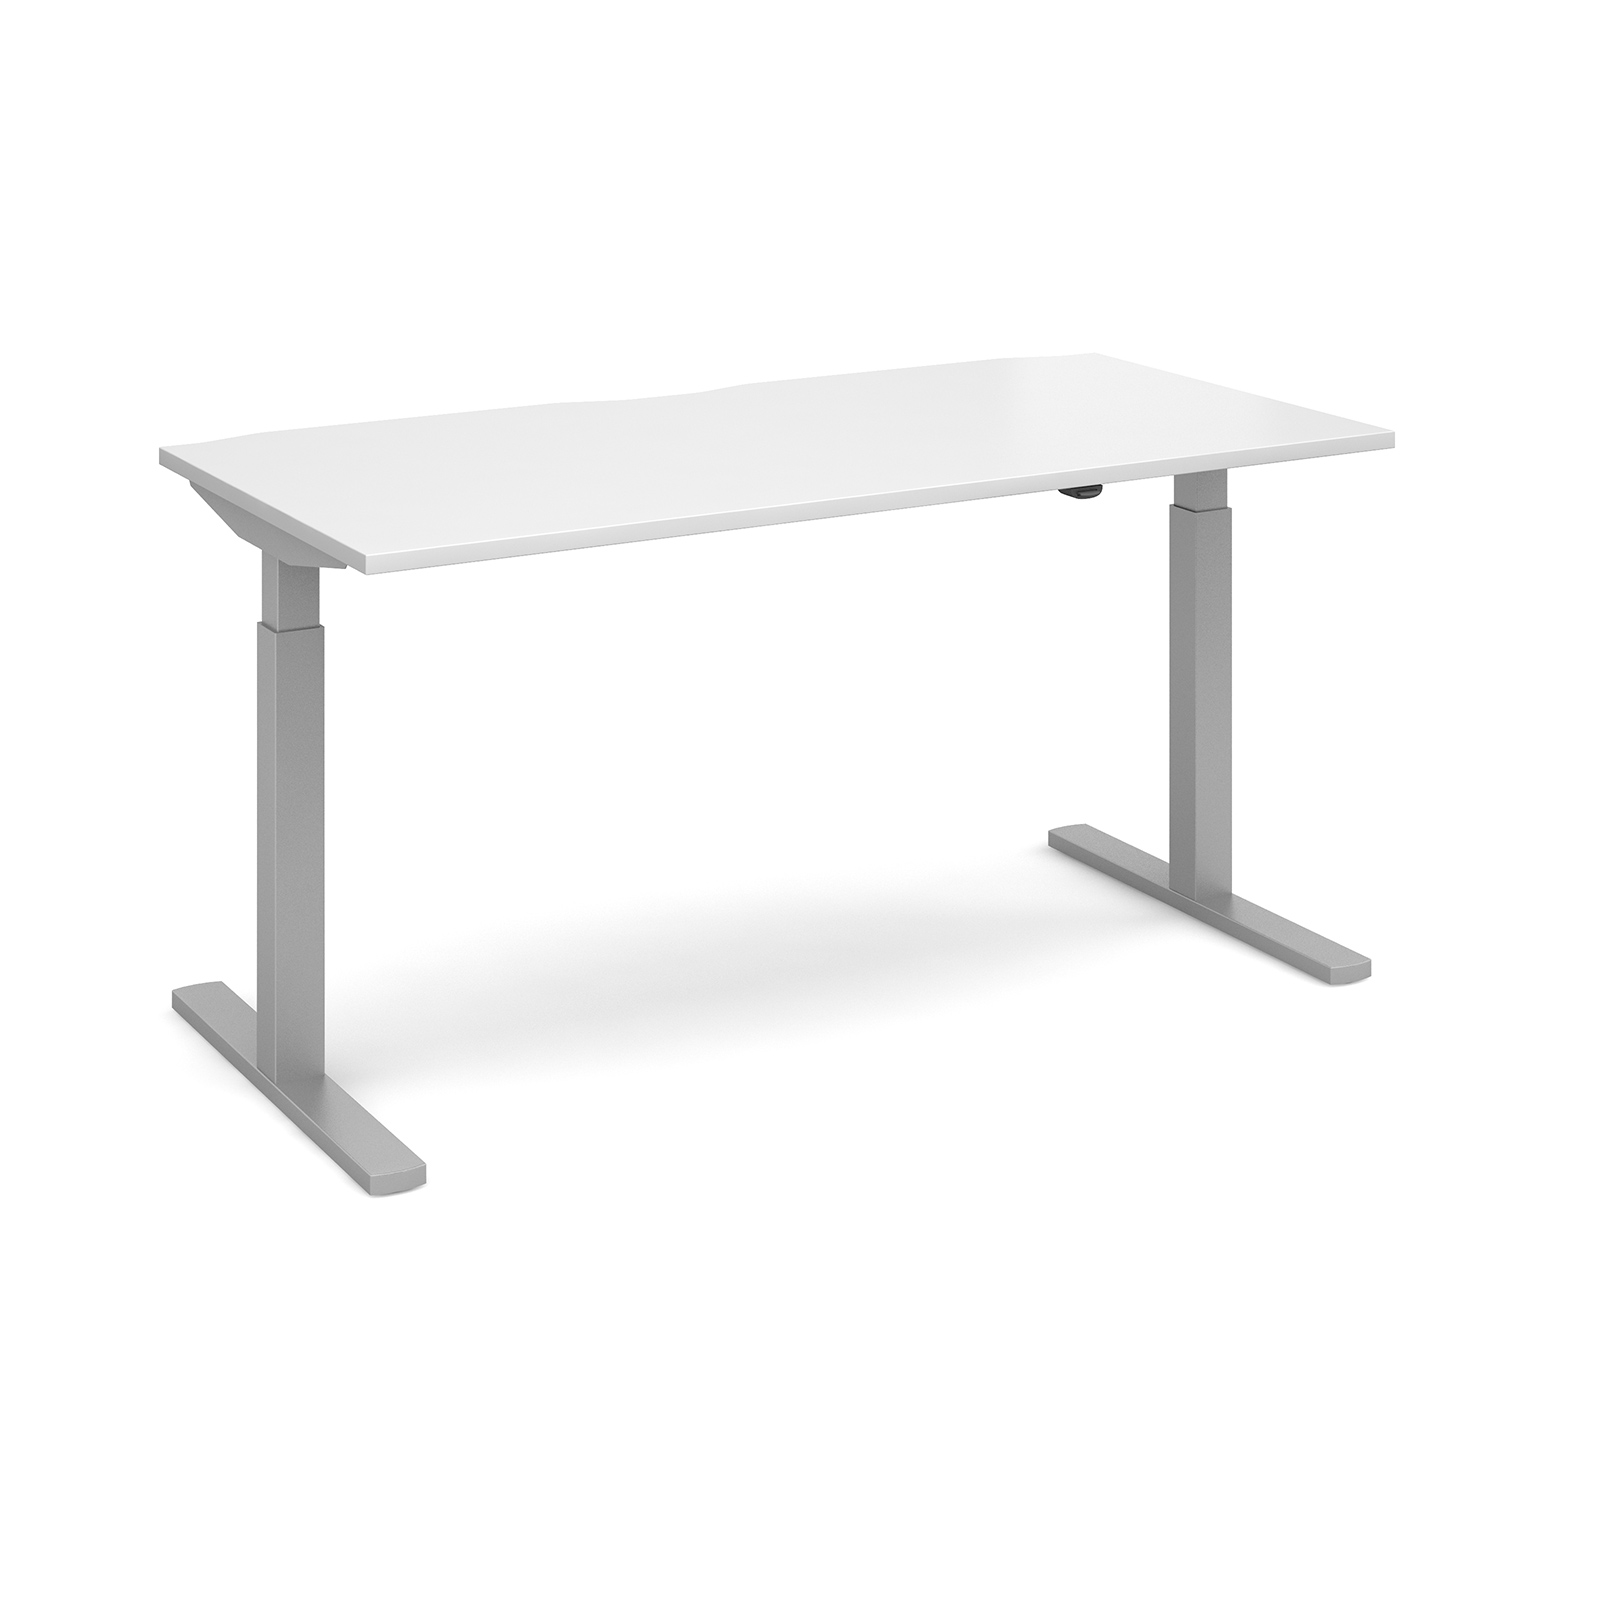 Elev8 Mono Straight Sit-Stand Desk 1600mm x 800mm - Silver Frame, White Top